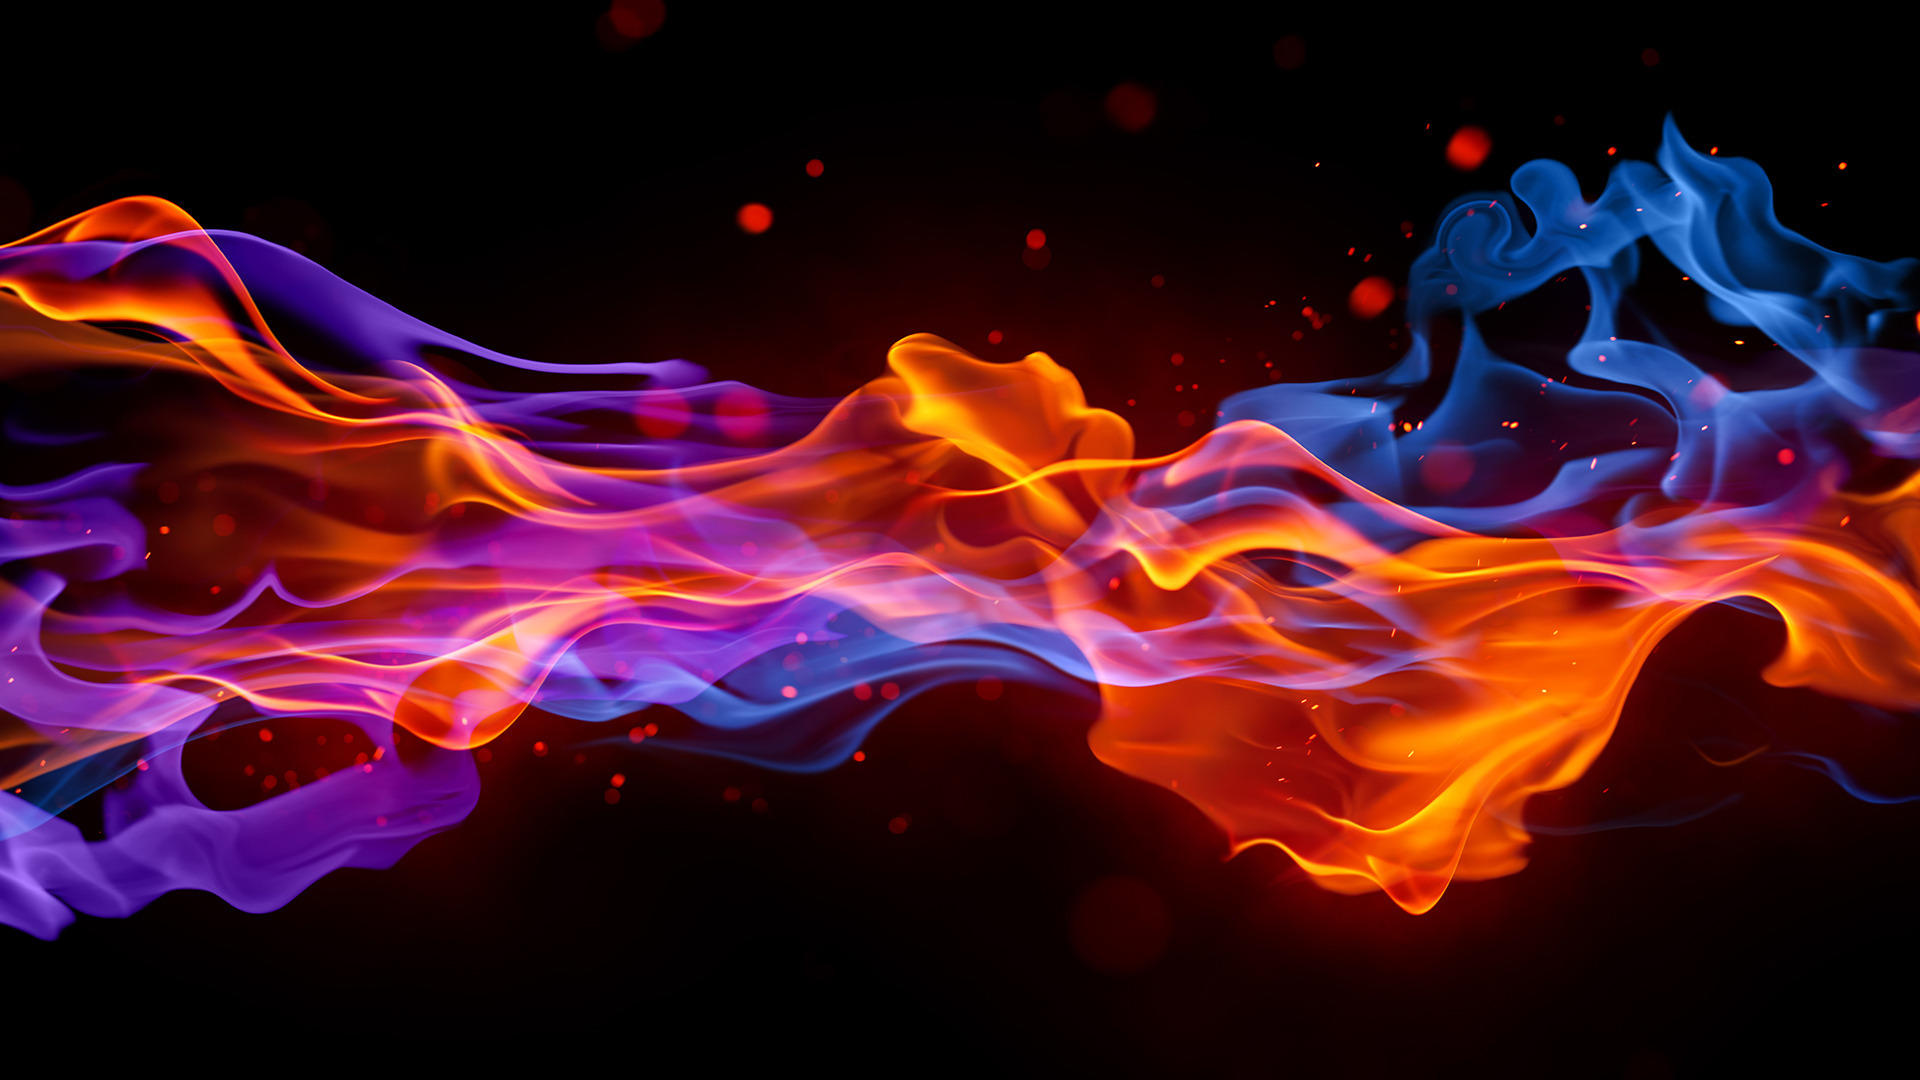 Fire and Smoke Abstract Wallpapers